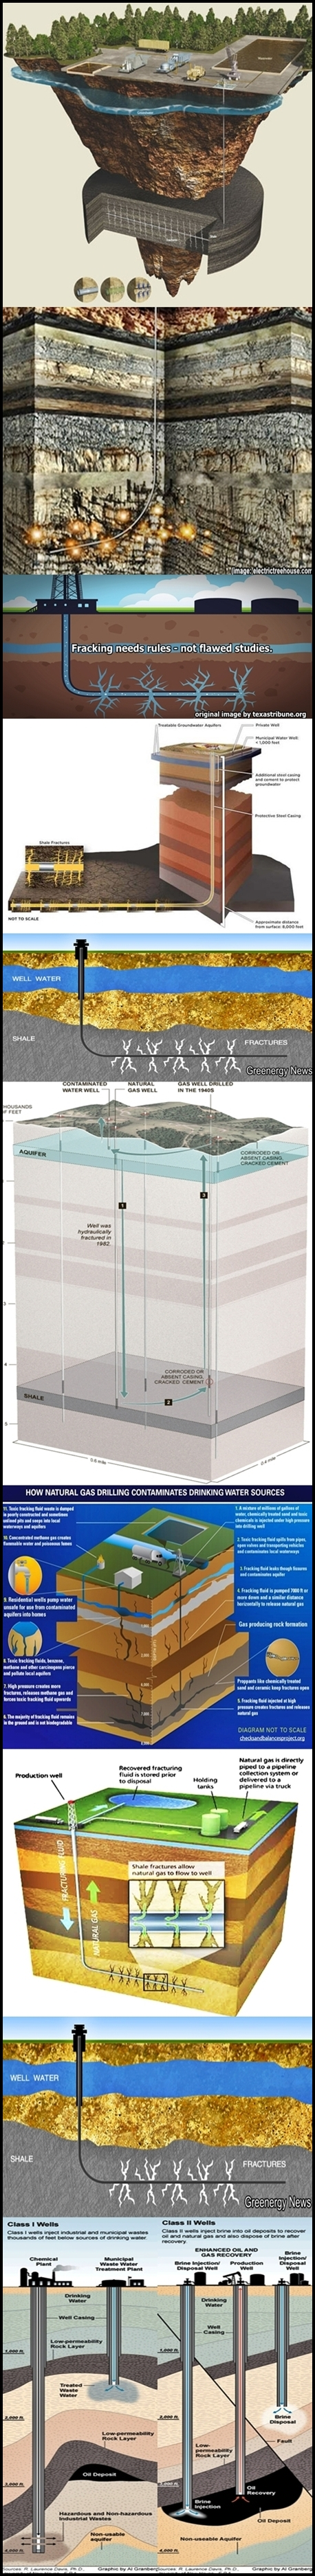 Courtesy of contributors across the internet Educational material Fracking explained in diagrams